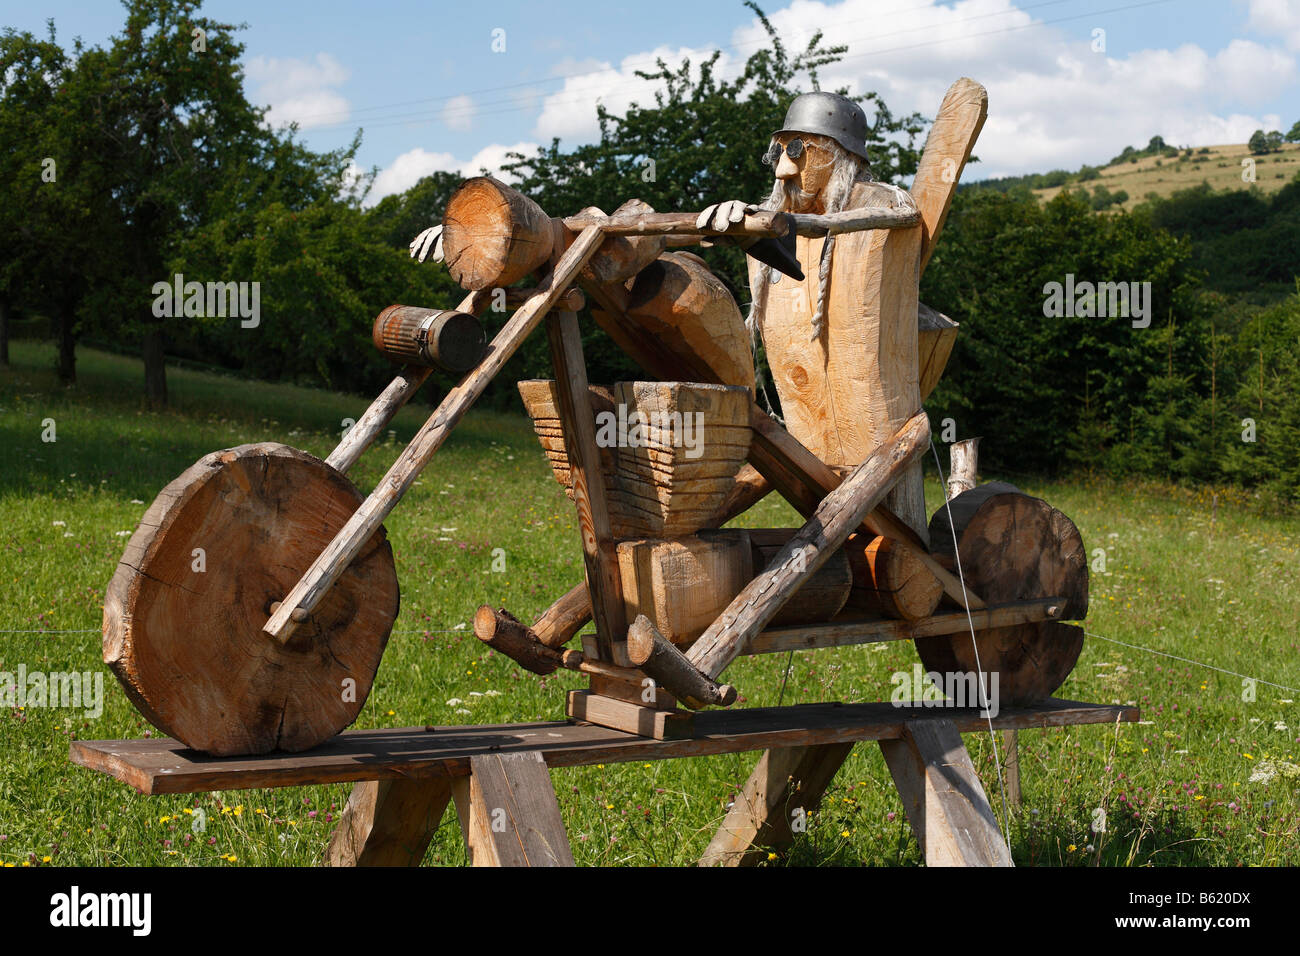 Chopper motorbike, artwork made out of wood, in the woodcarving town of Empfertshausen, Rhoen, Thuringia, Germany, - Stock Image